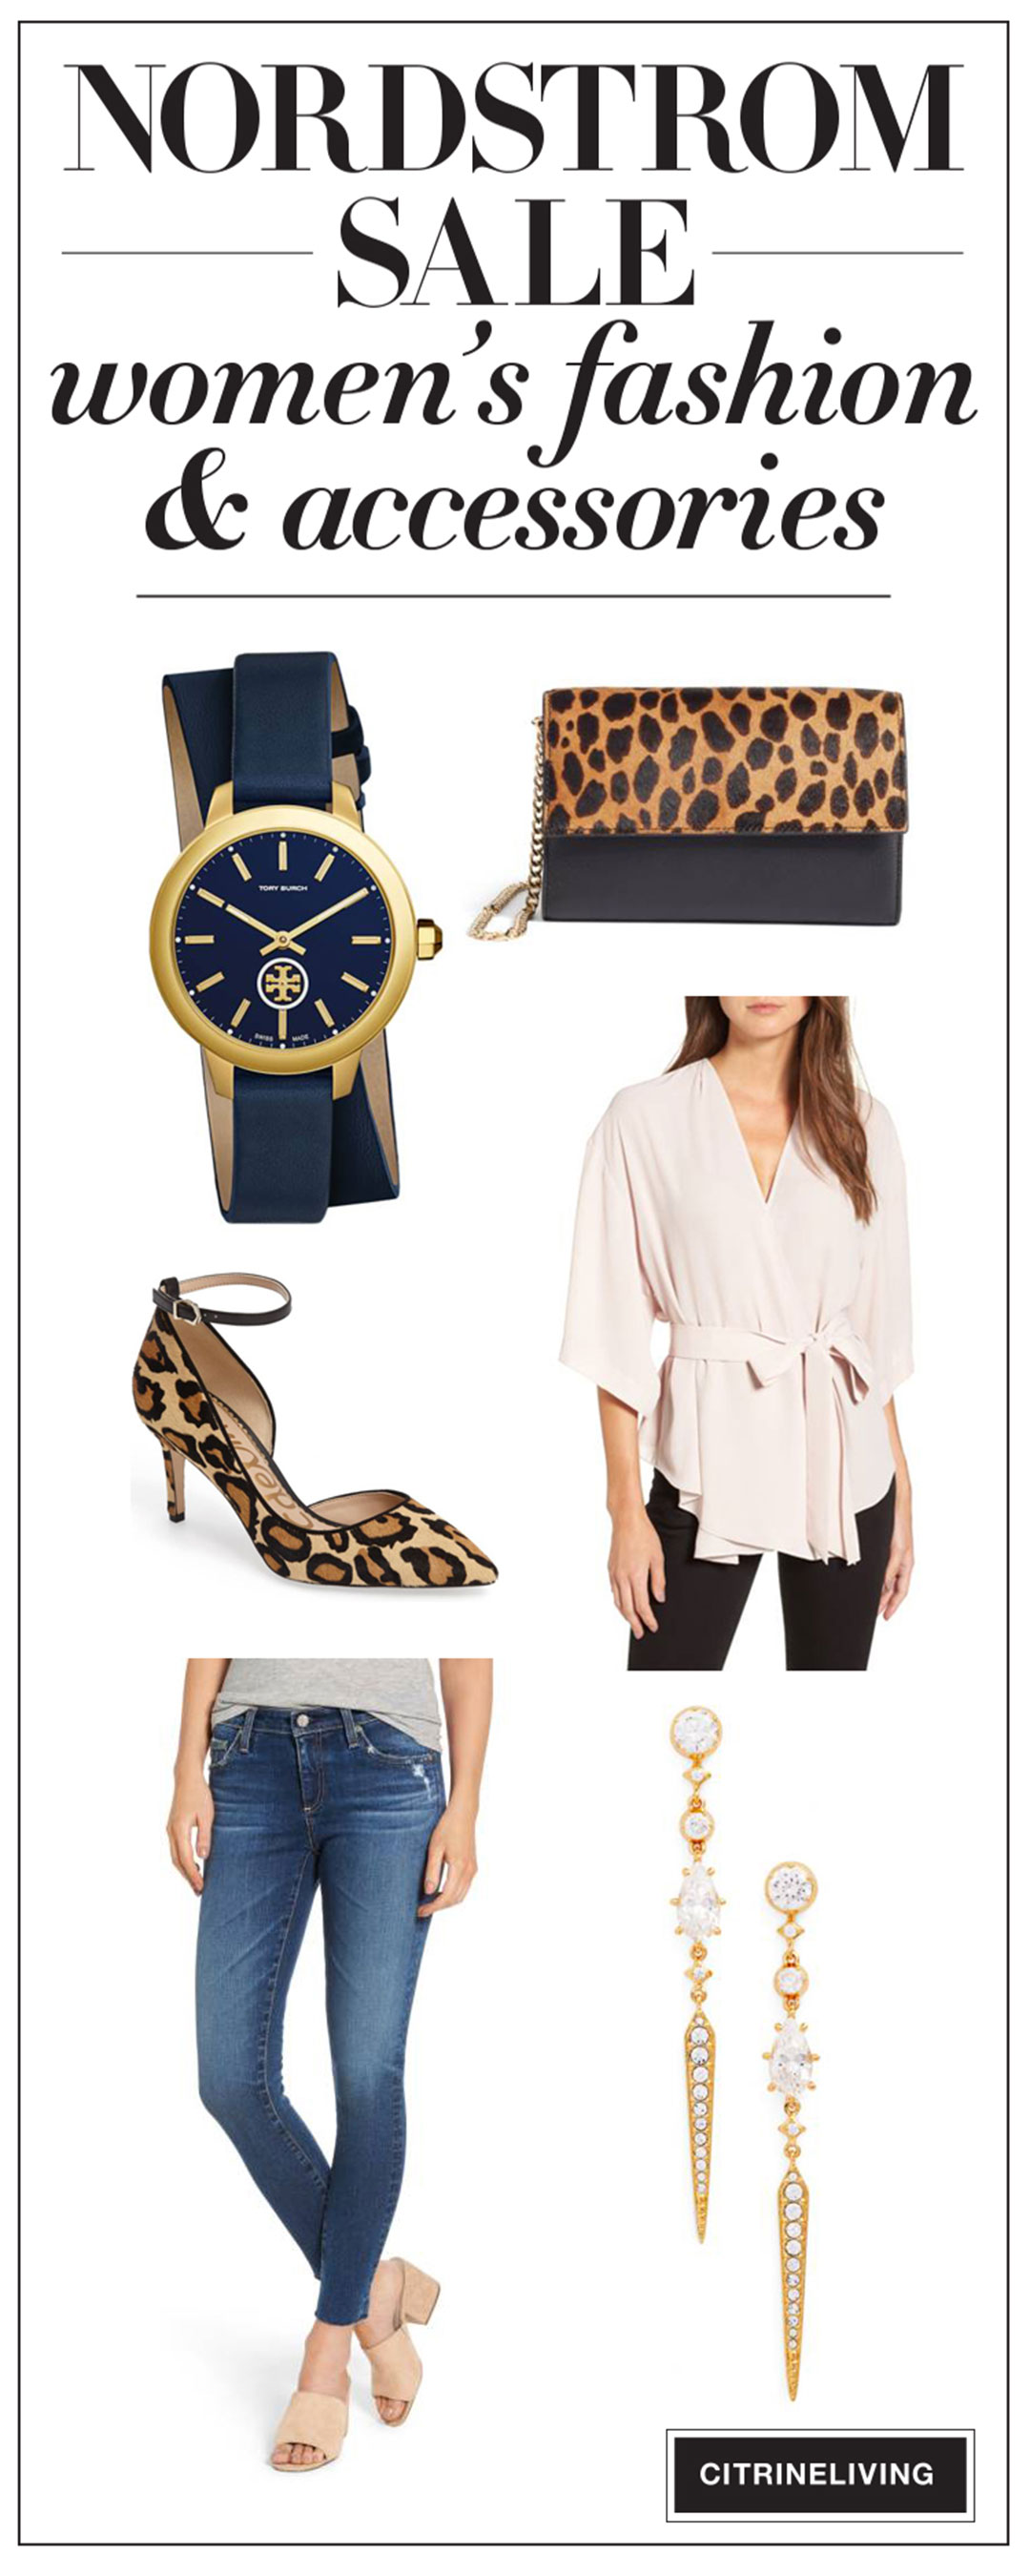 Nordstrom Anniversary Sale - Women's Fashion and Accessories